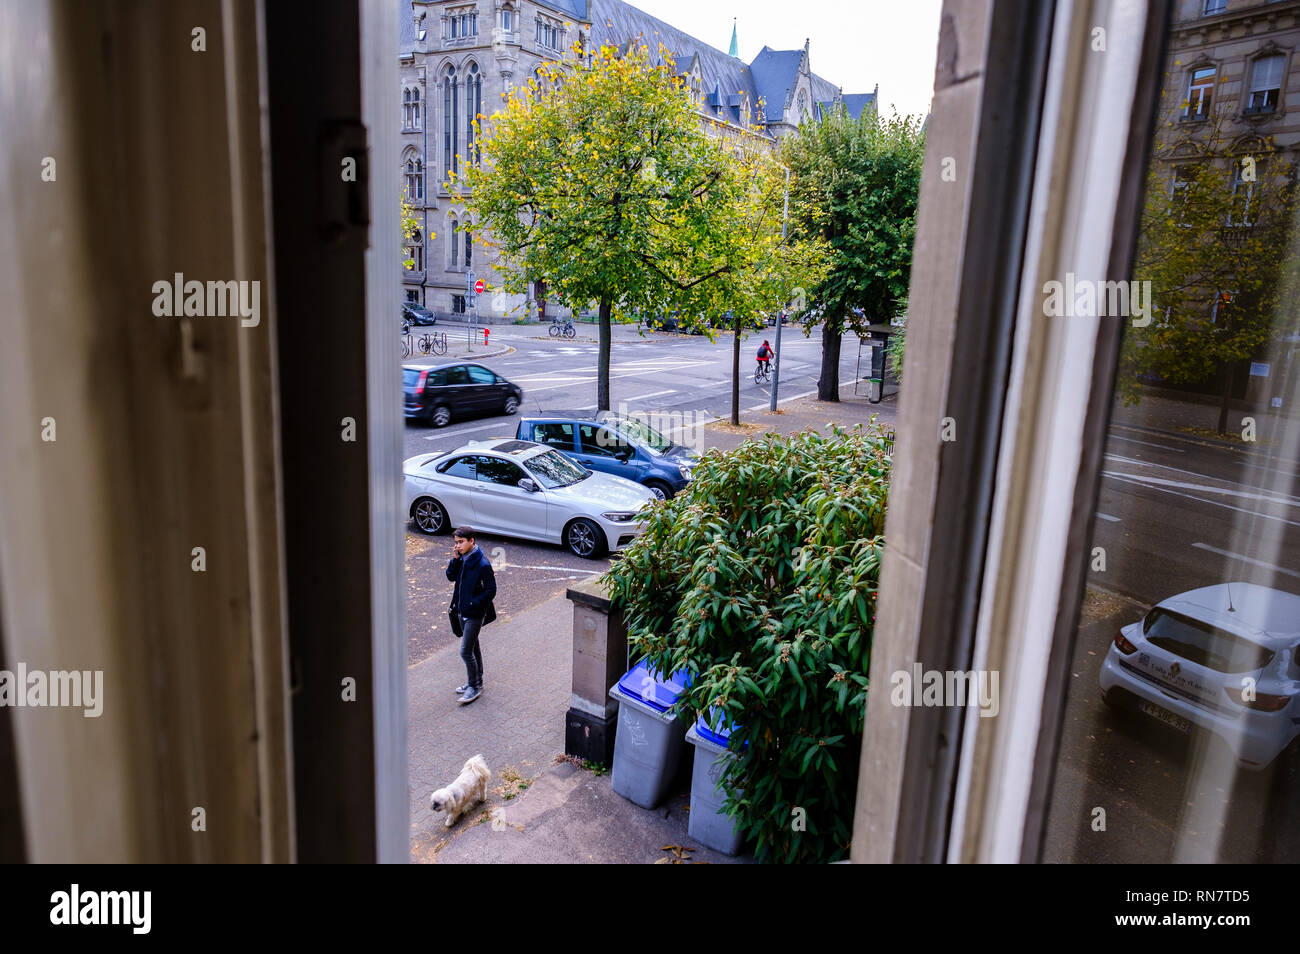 Strasbourg, Alsace, France, framed by window, street, cars, young man walking the dog, - Stock Image